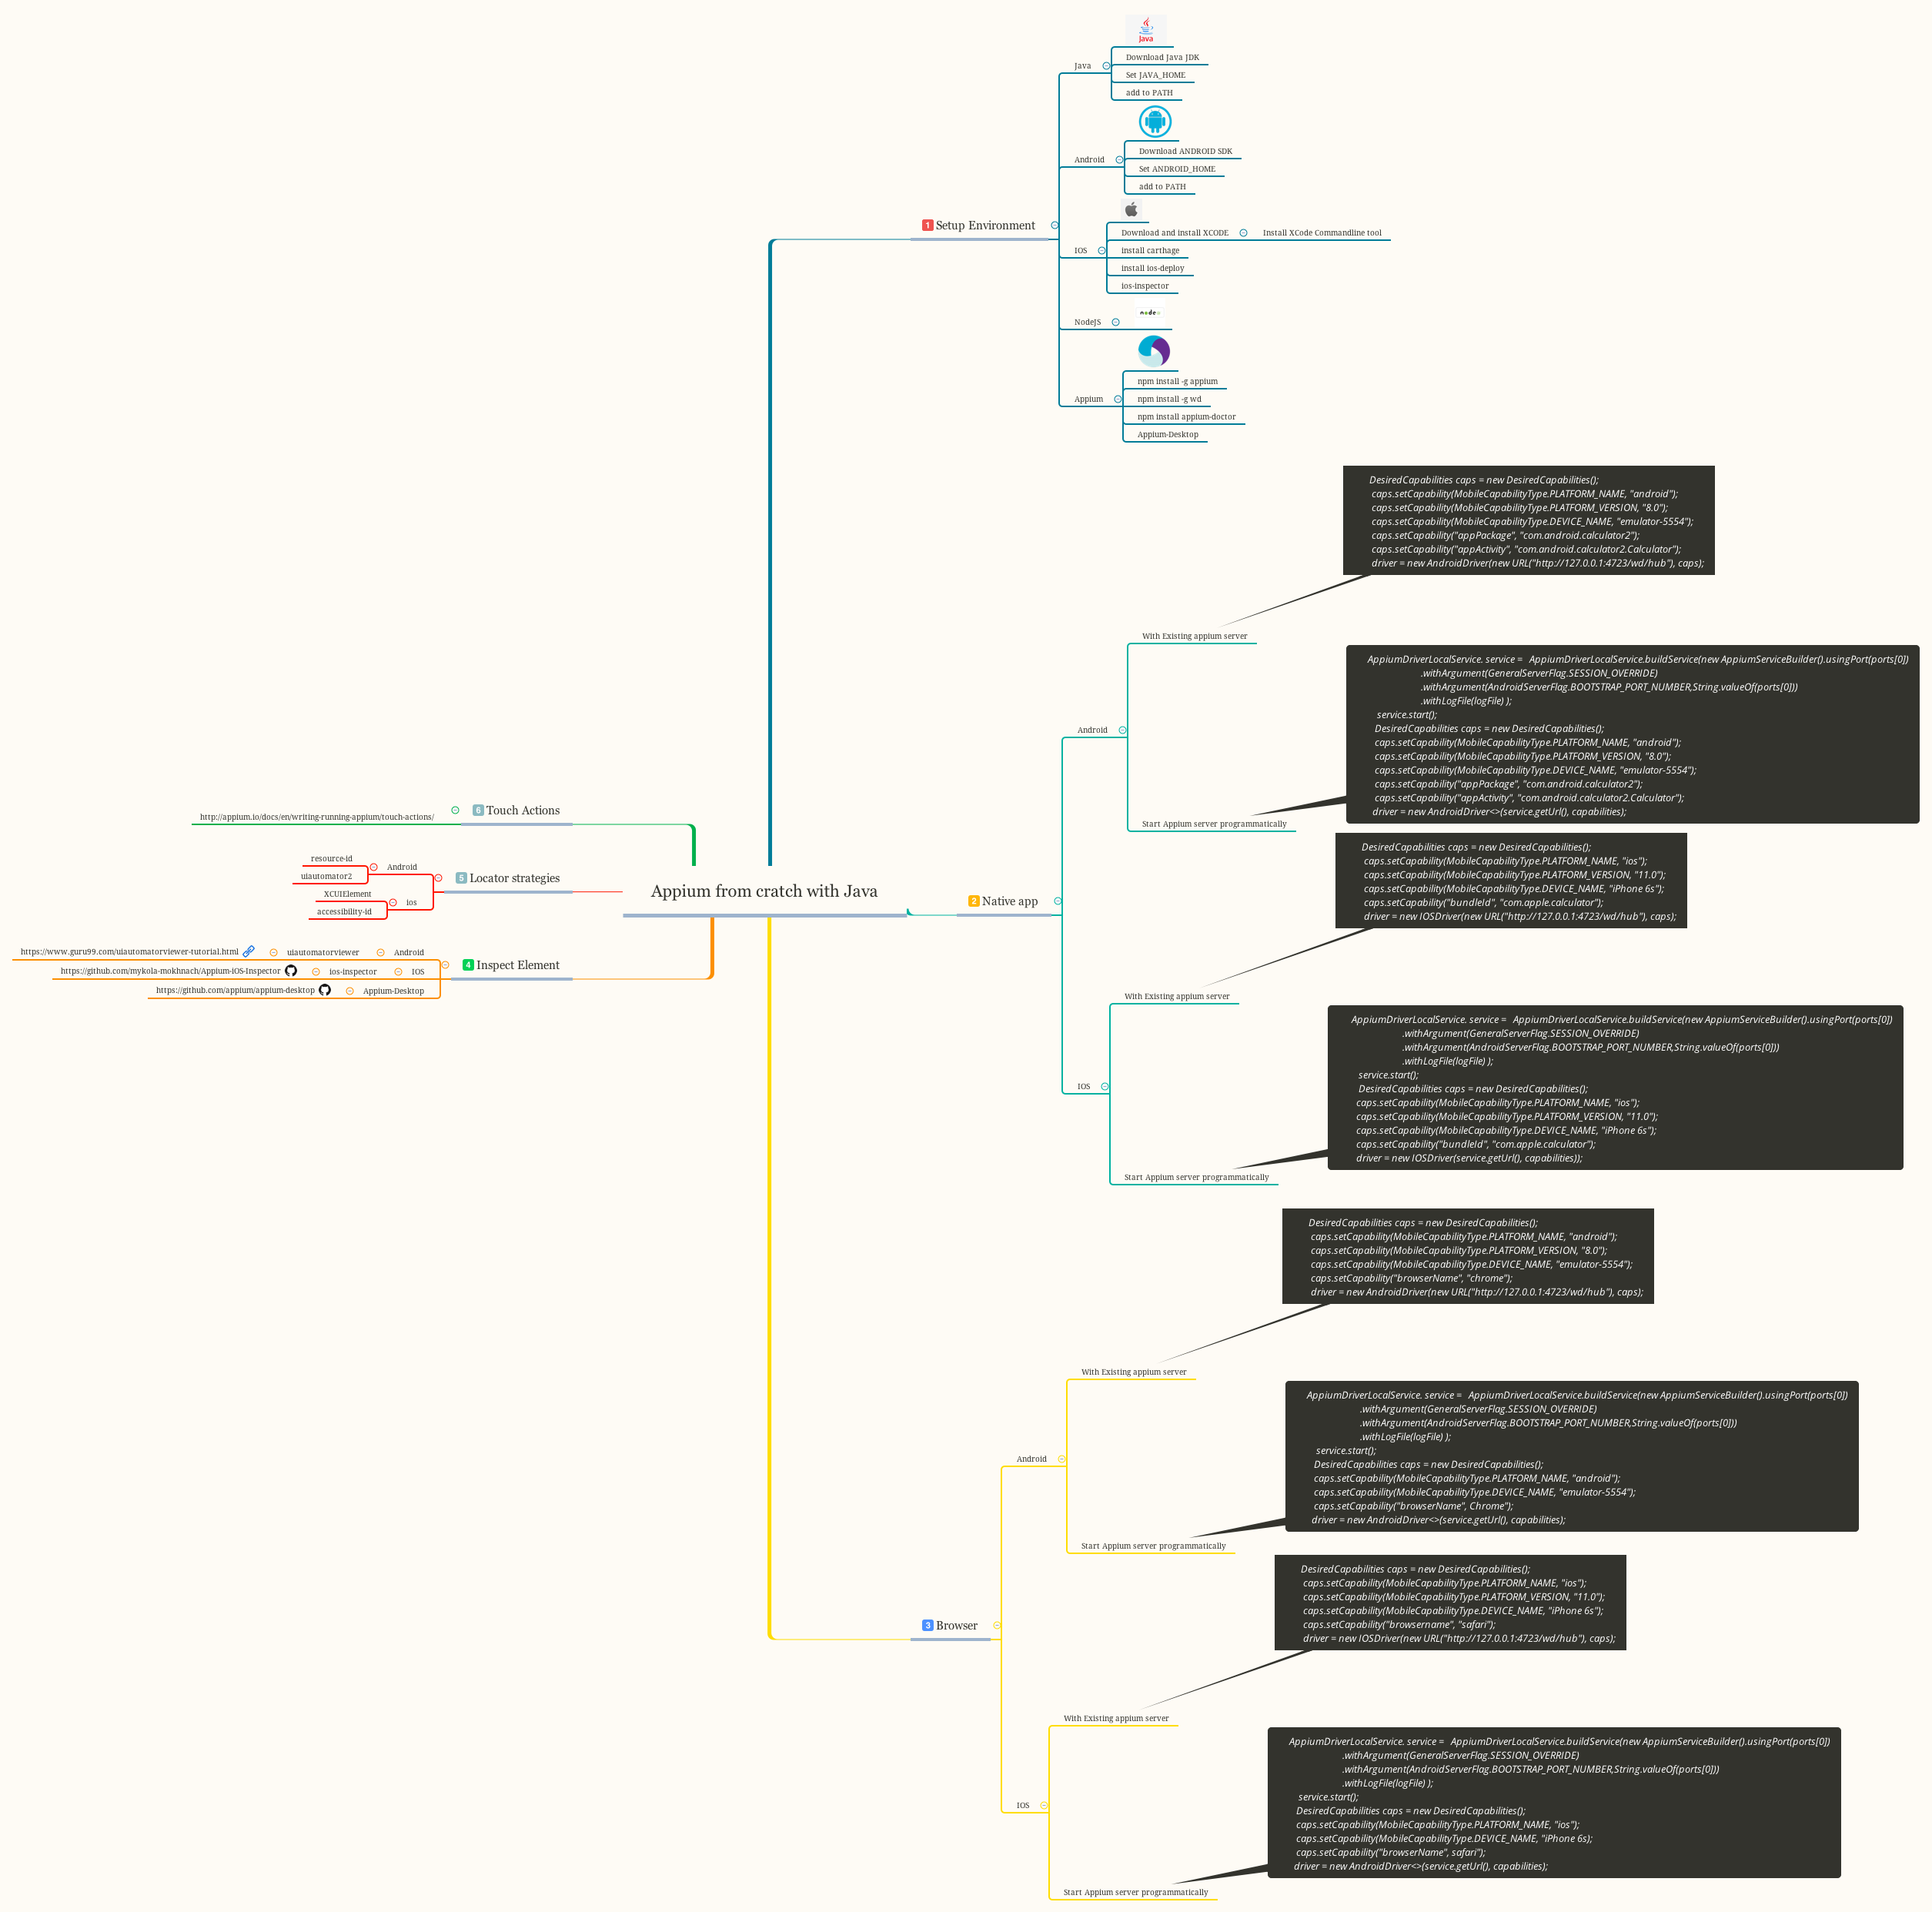 Appium with Java from scratch Mindmap – Automation Test